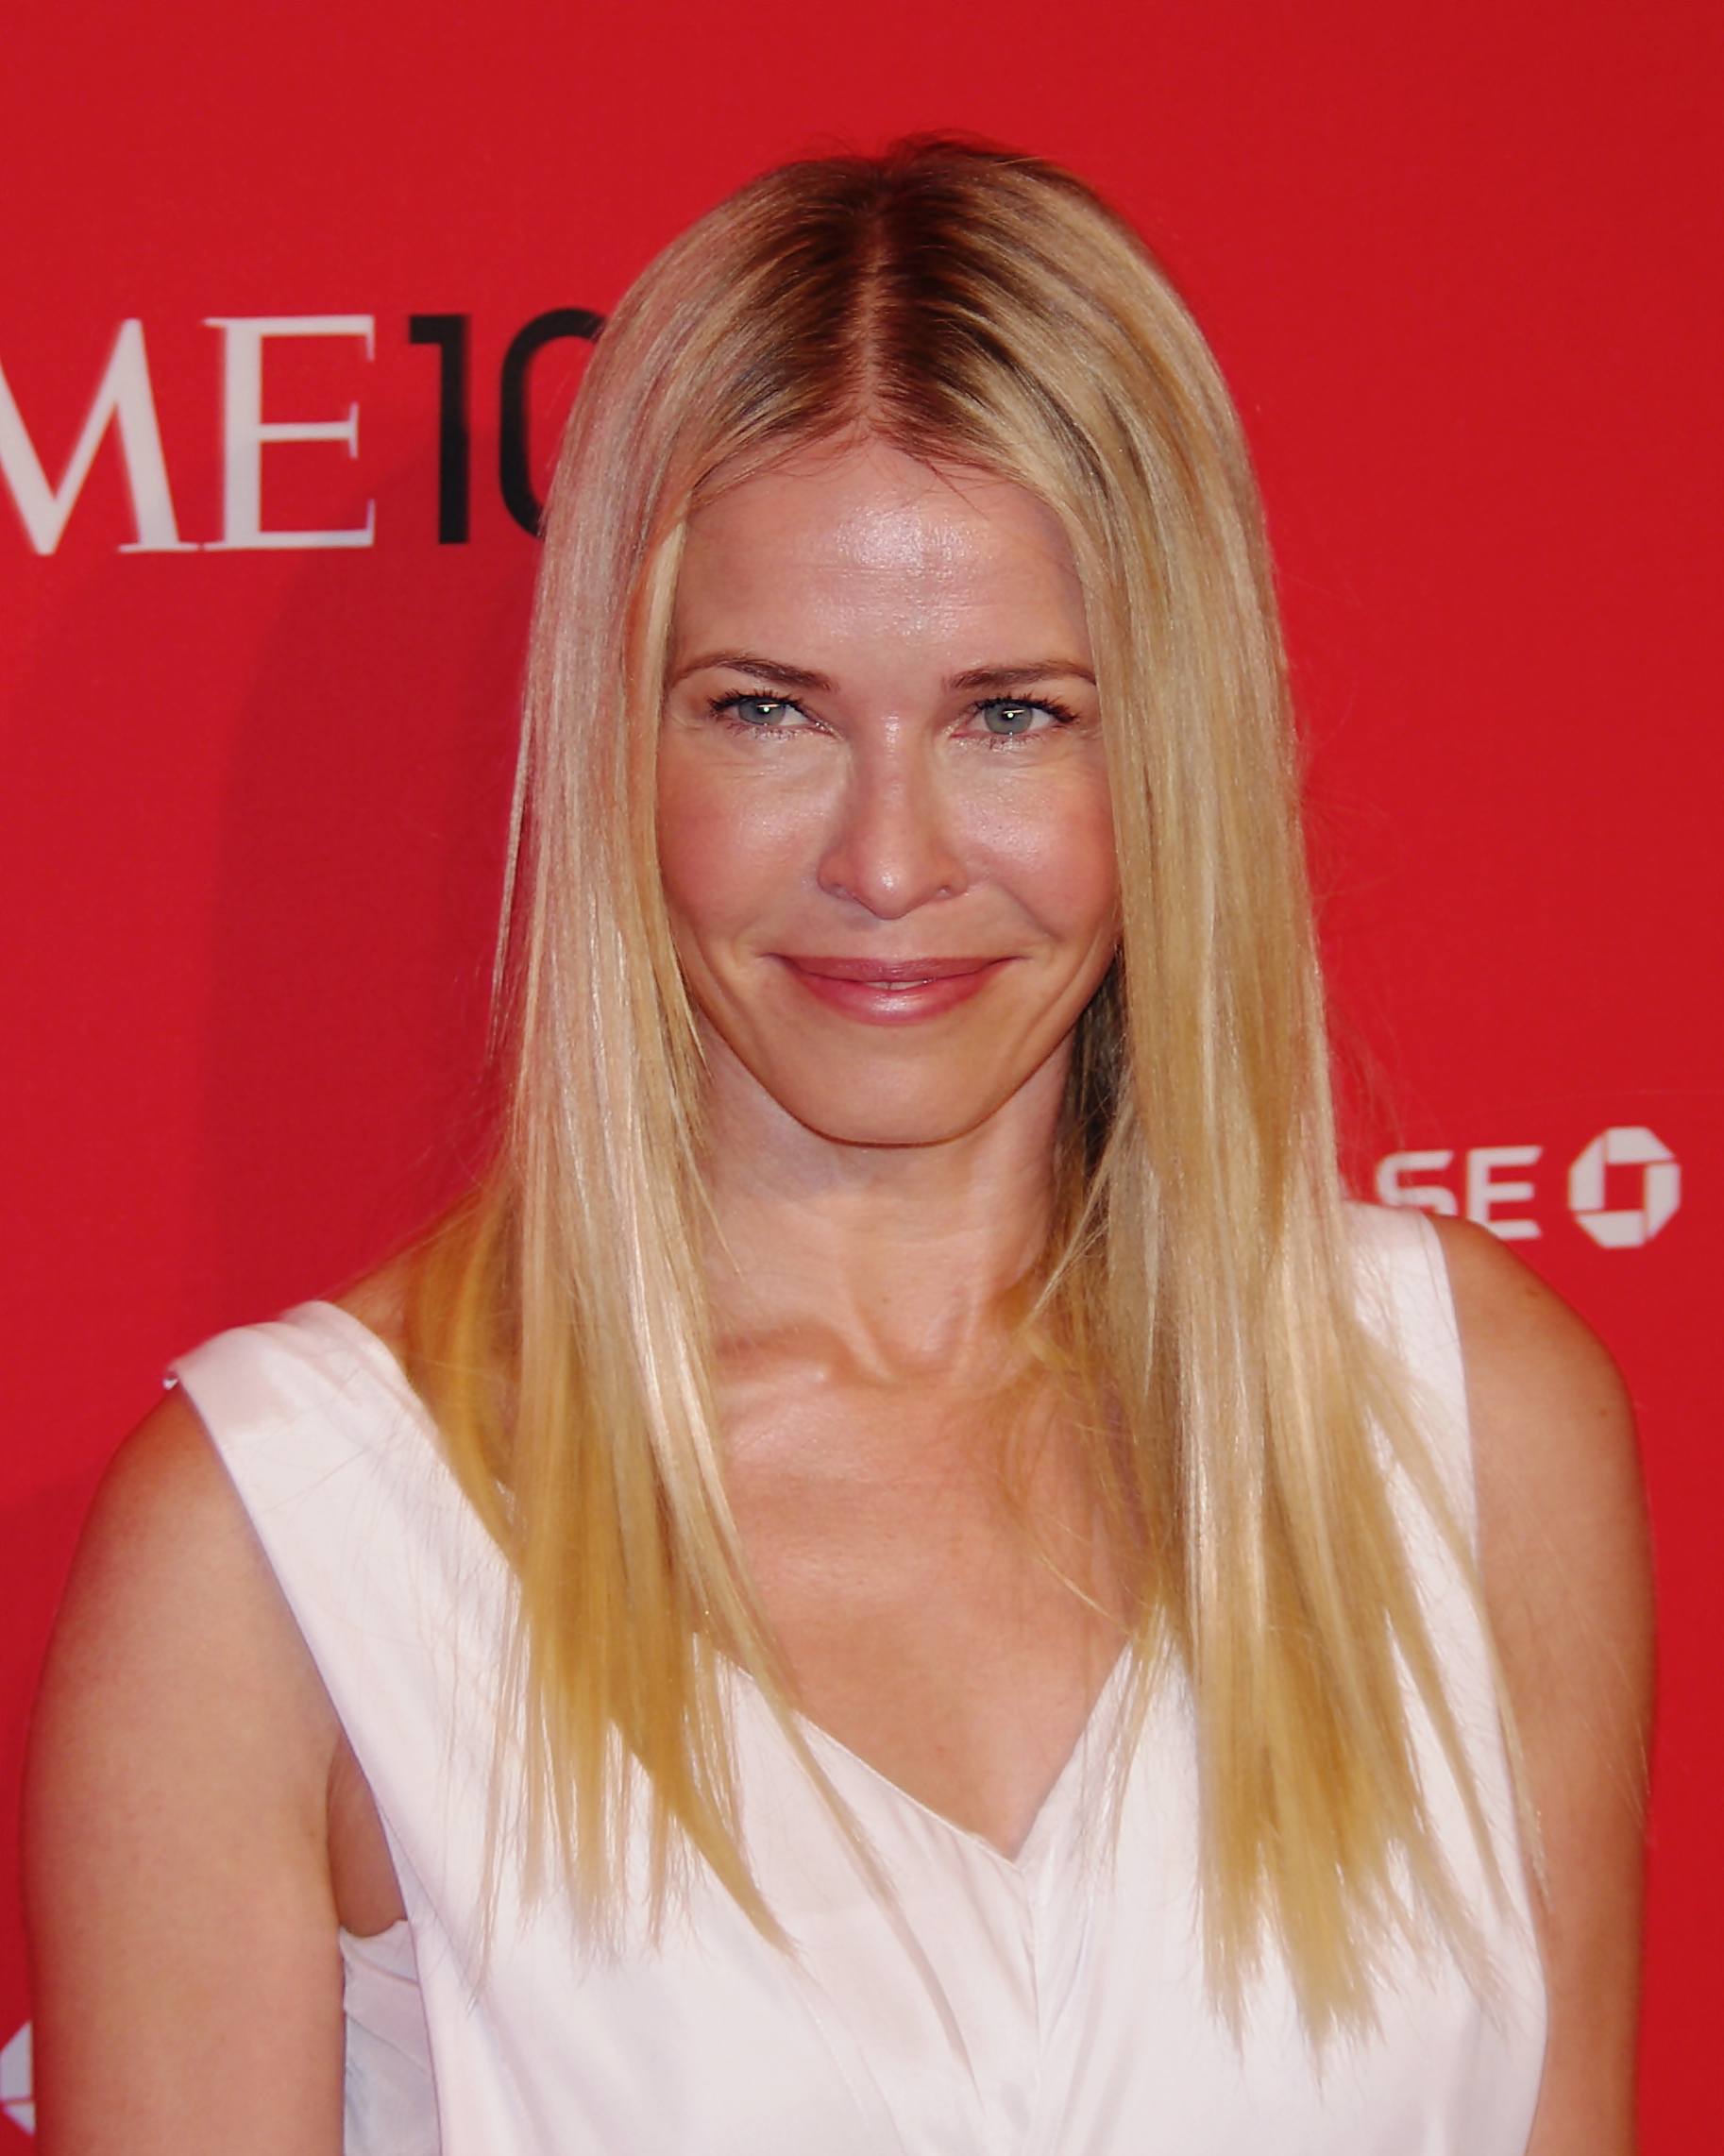 Chelsea Handler - Wikipedia, the free encyclopedia